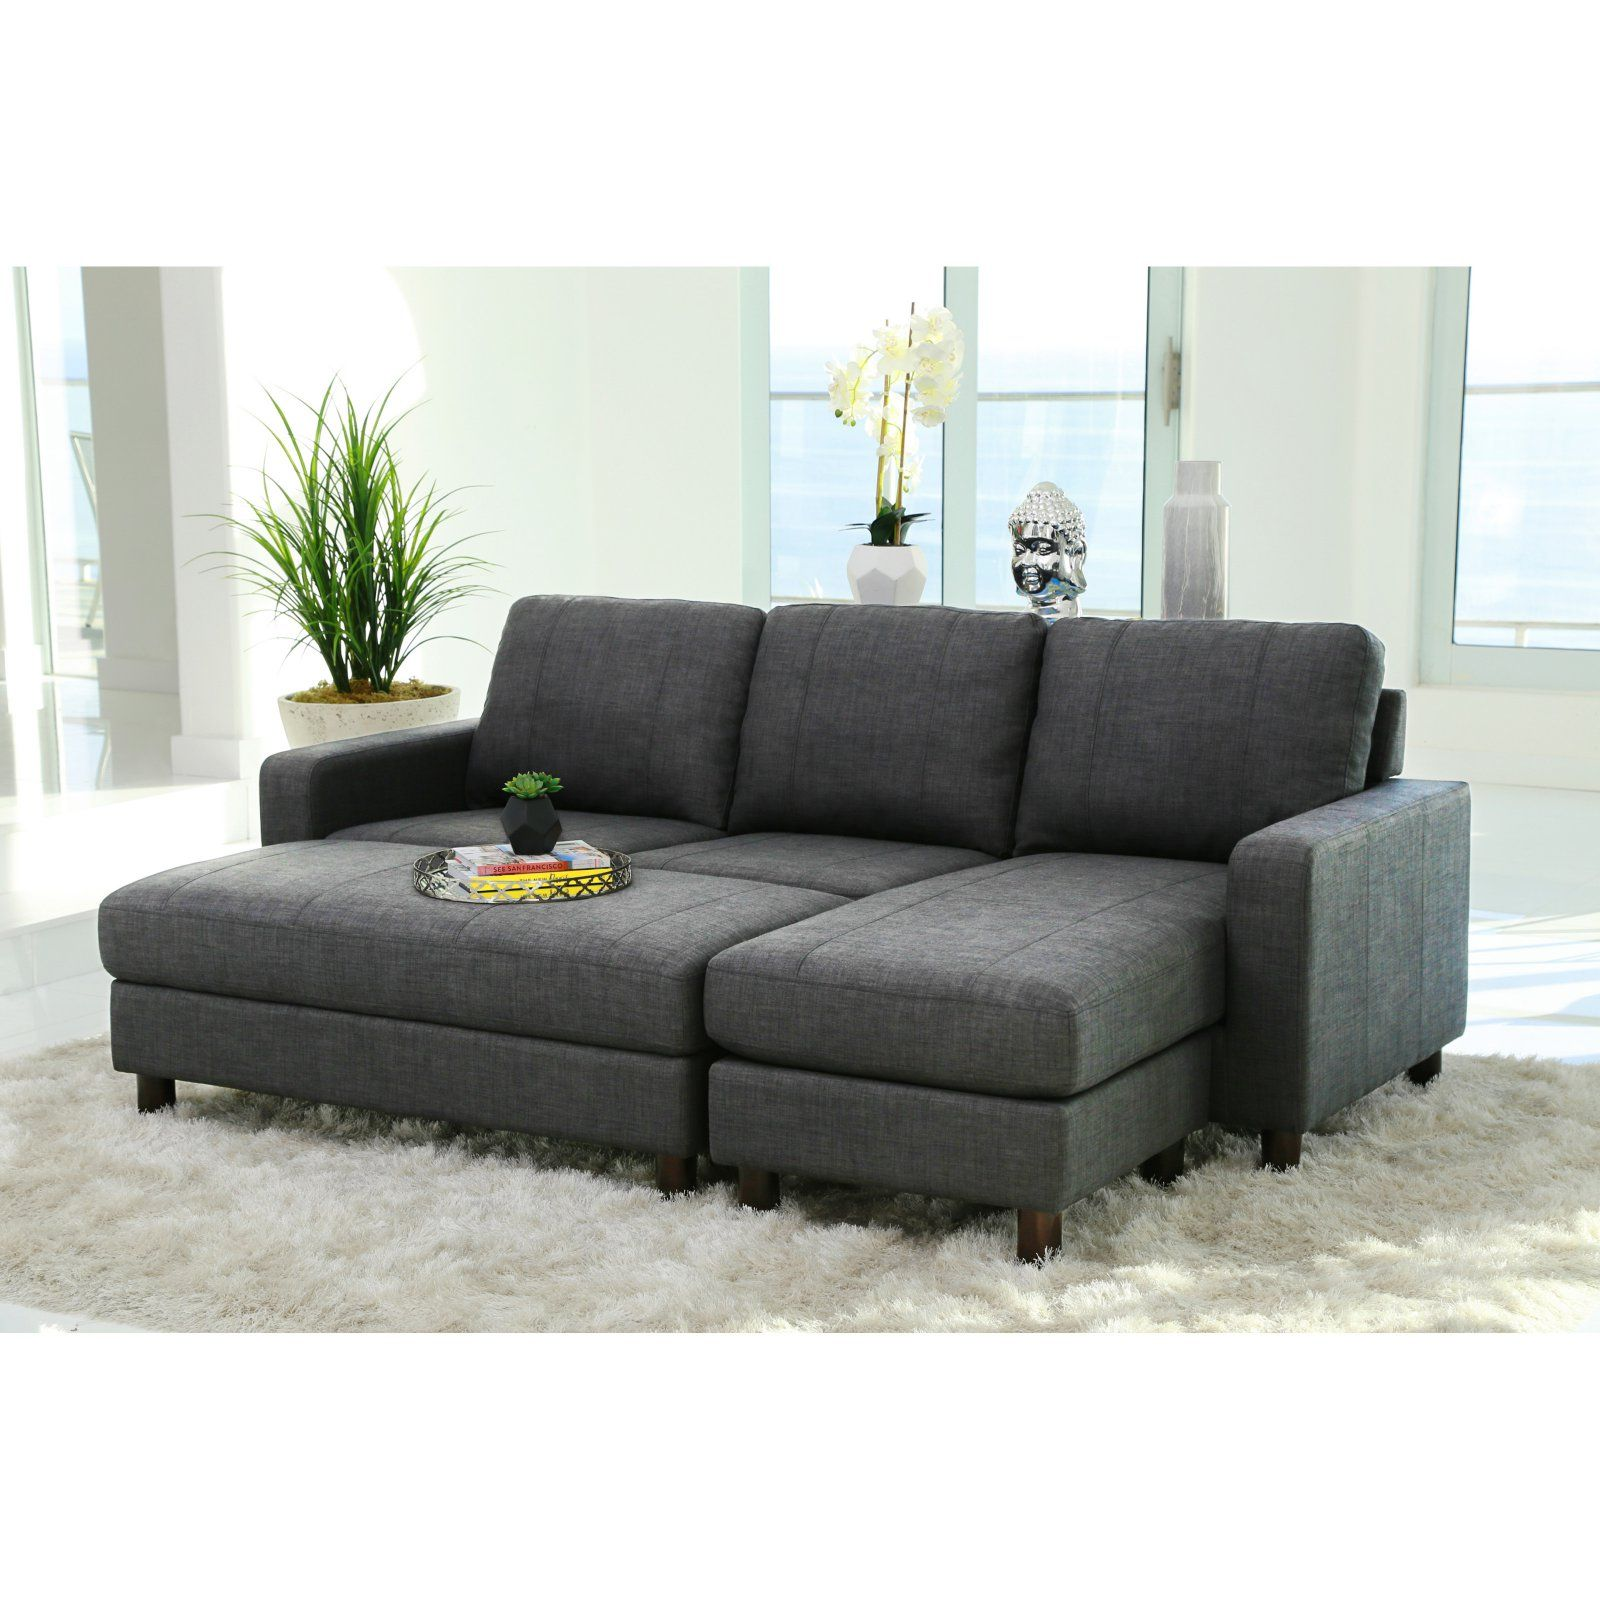 Phenomenal Abbyson Stanford Fabric Reversible Sectional Sofa With Onthecornerstone Fun Painted Chair Ideas Images Onthecornerstoneorg